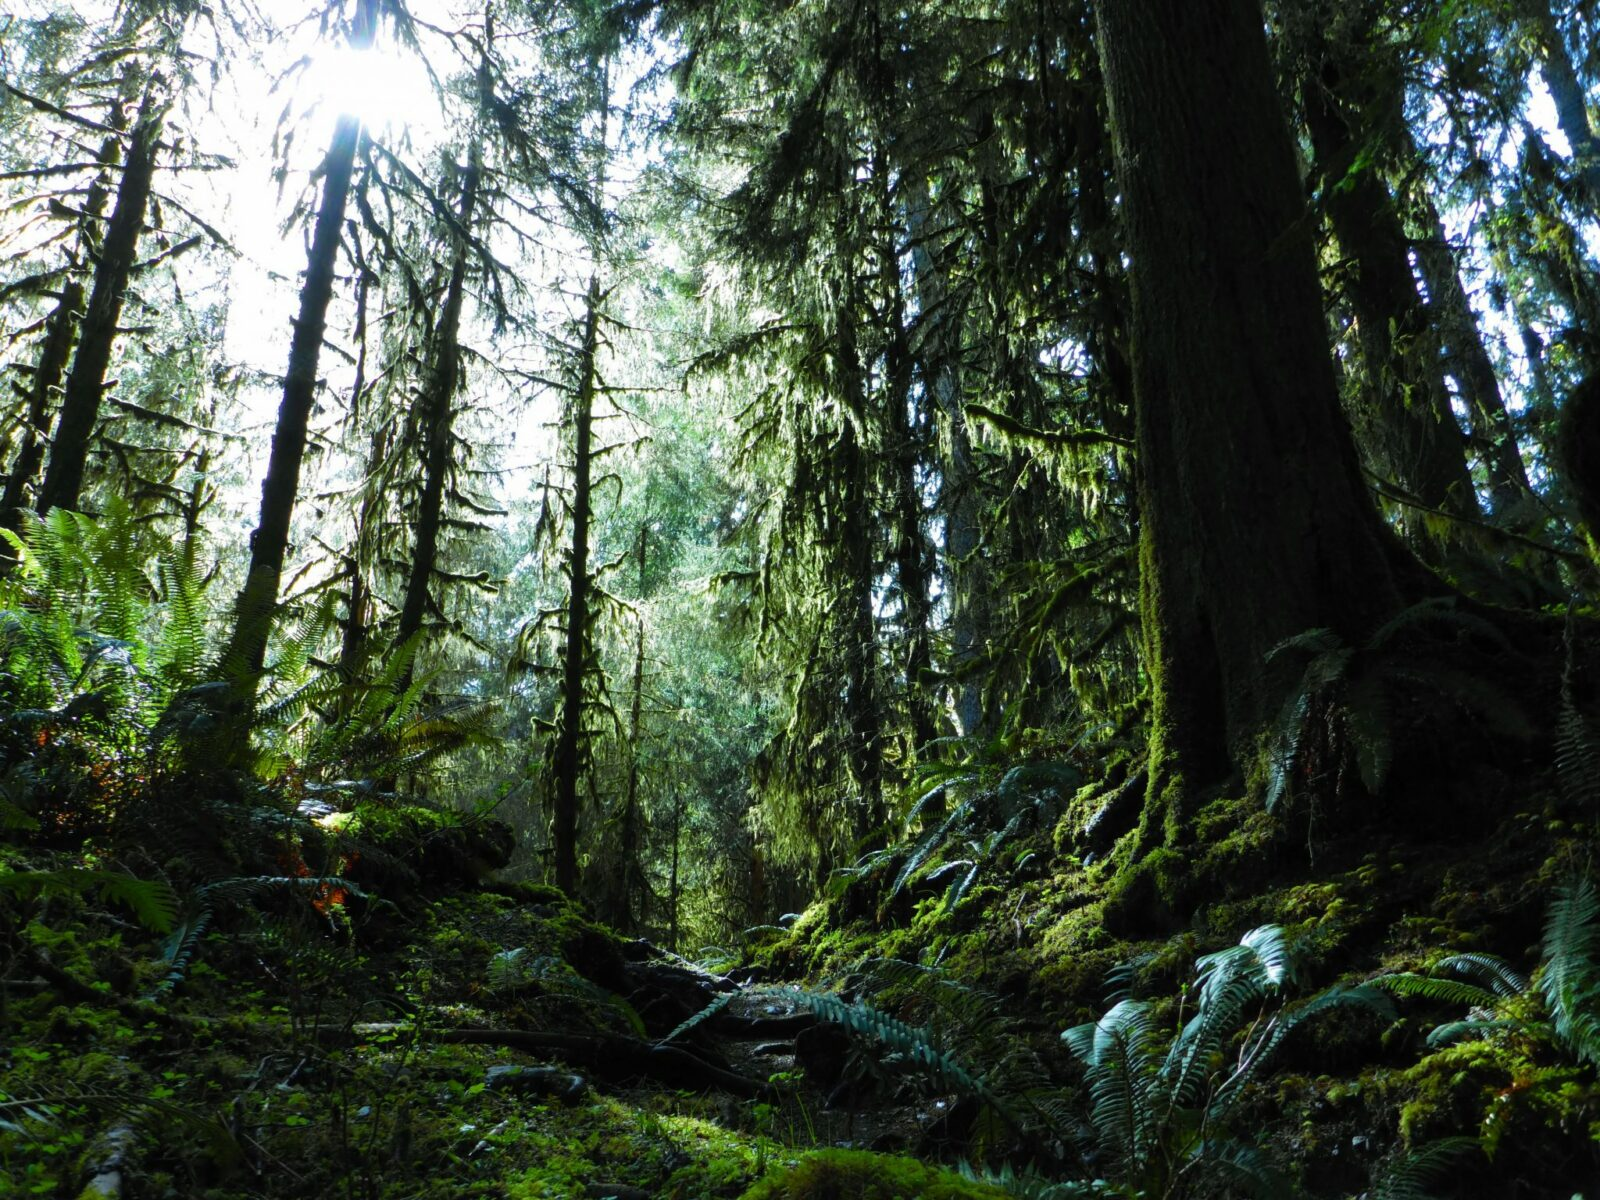 A thick canopy of old growth trees with ferns and moss